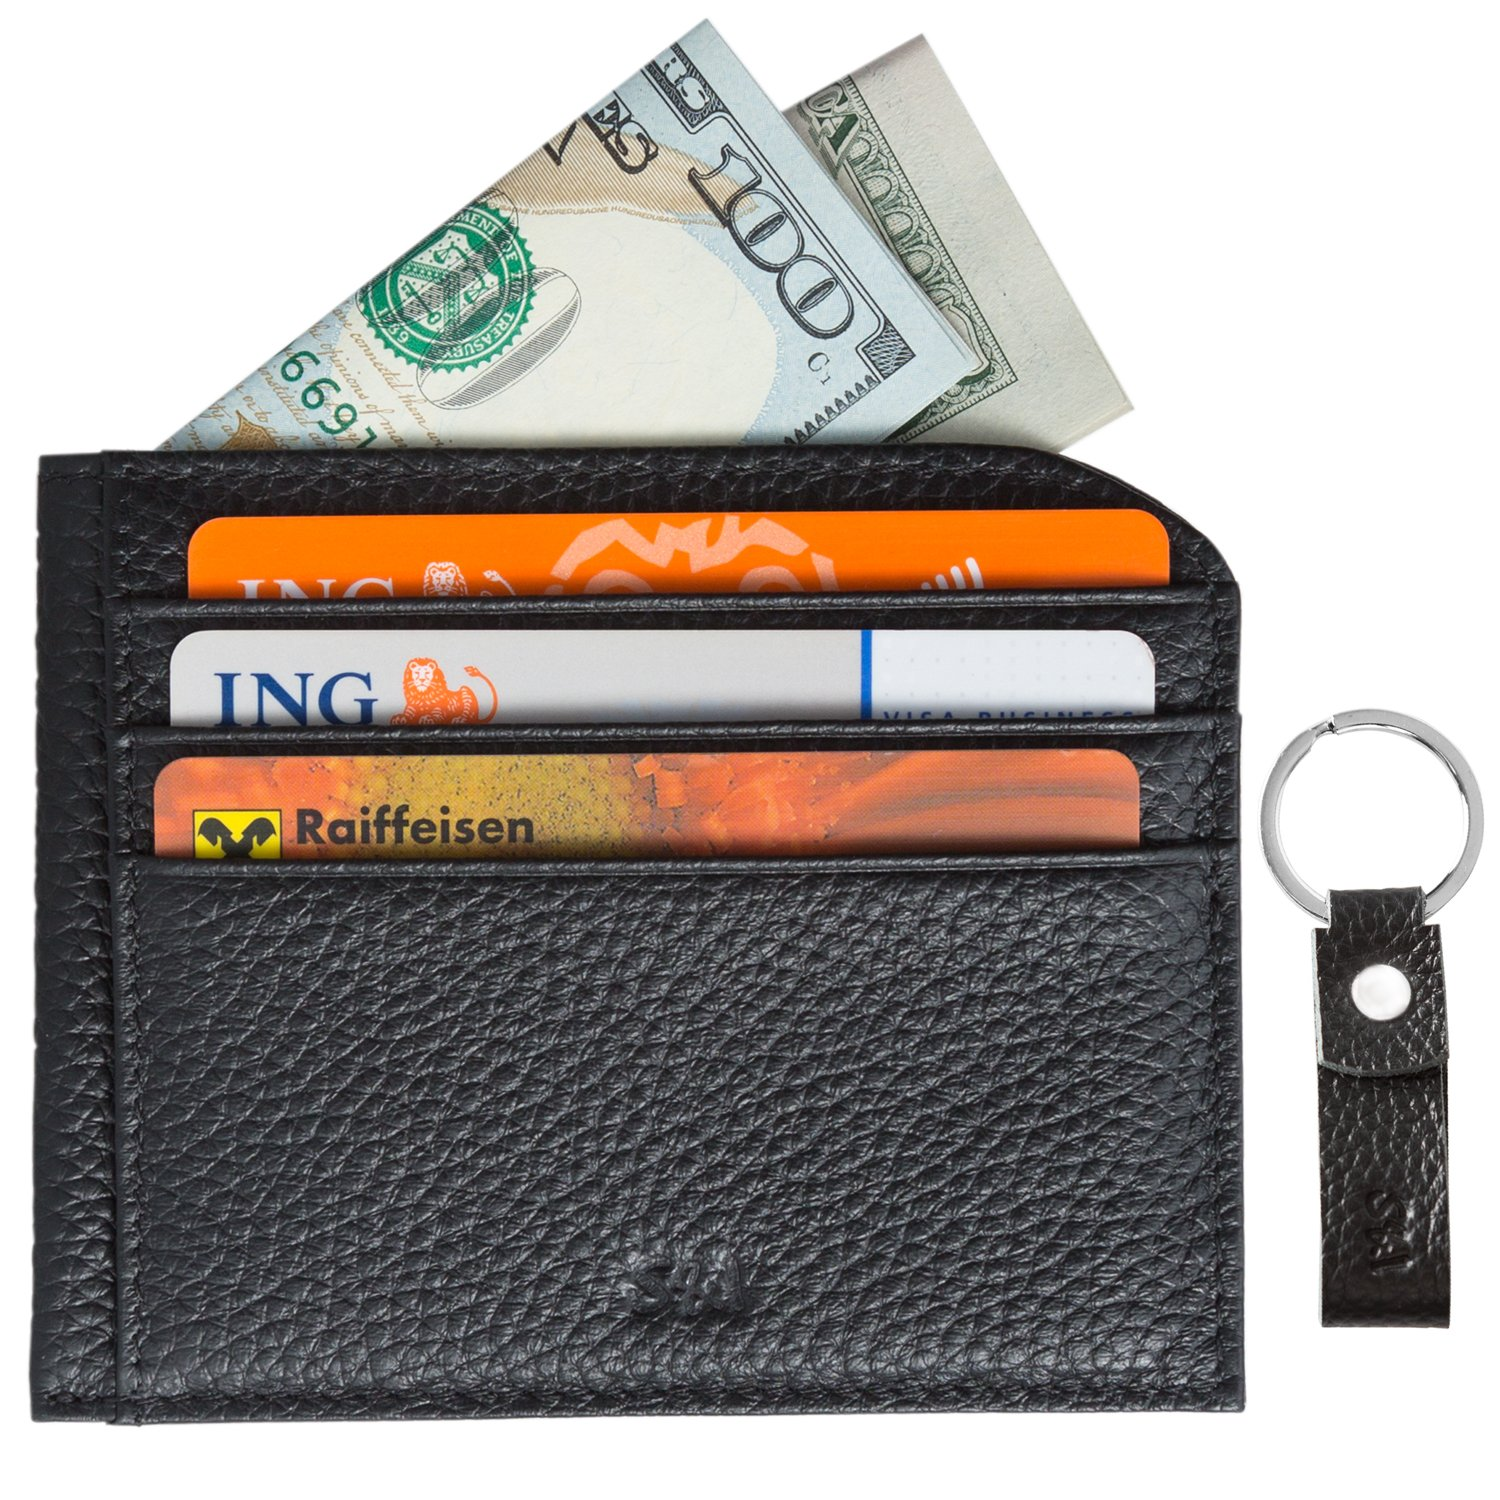 Slim Front Pocket Credit Card Wallet with ID Window and Key-Ring Set – Minimalist Genuine Leather RFID Blocking - by S&I Fine Goods,Black,Small